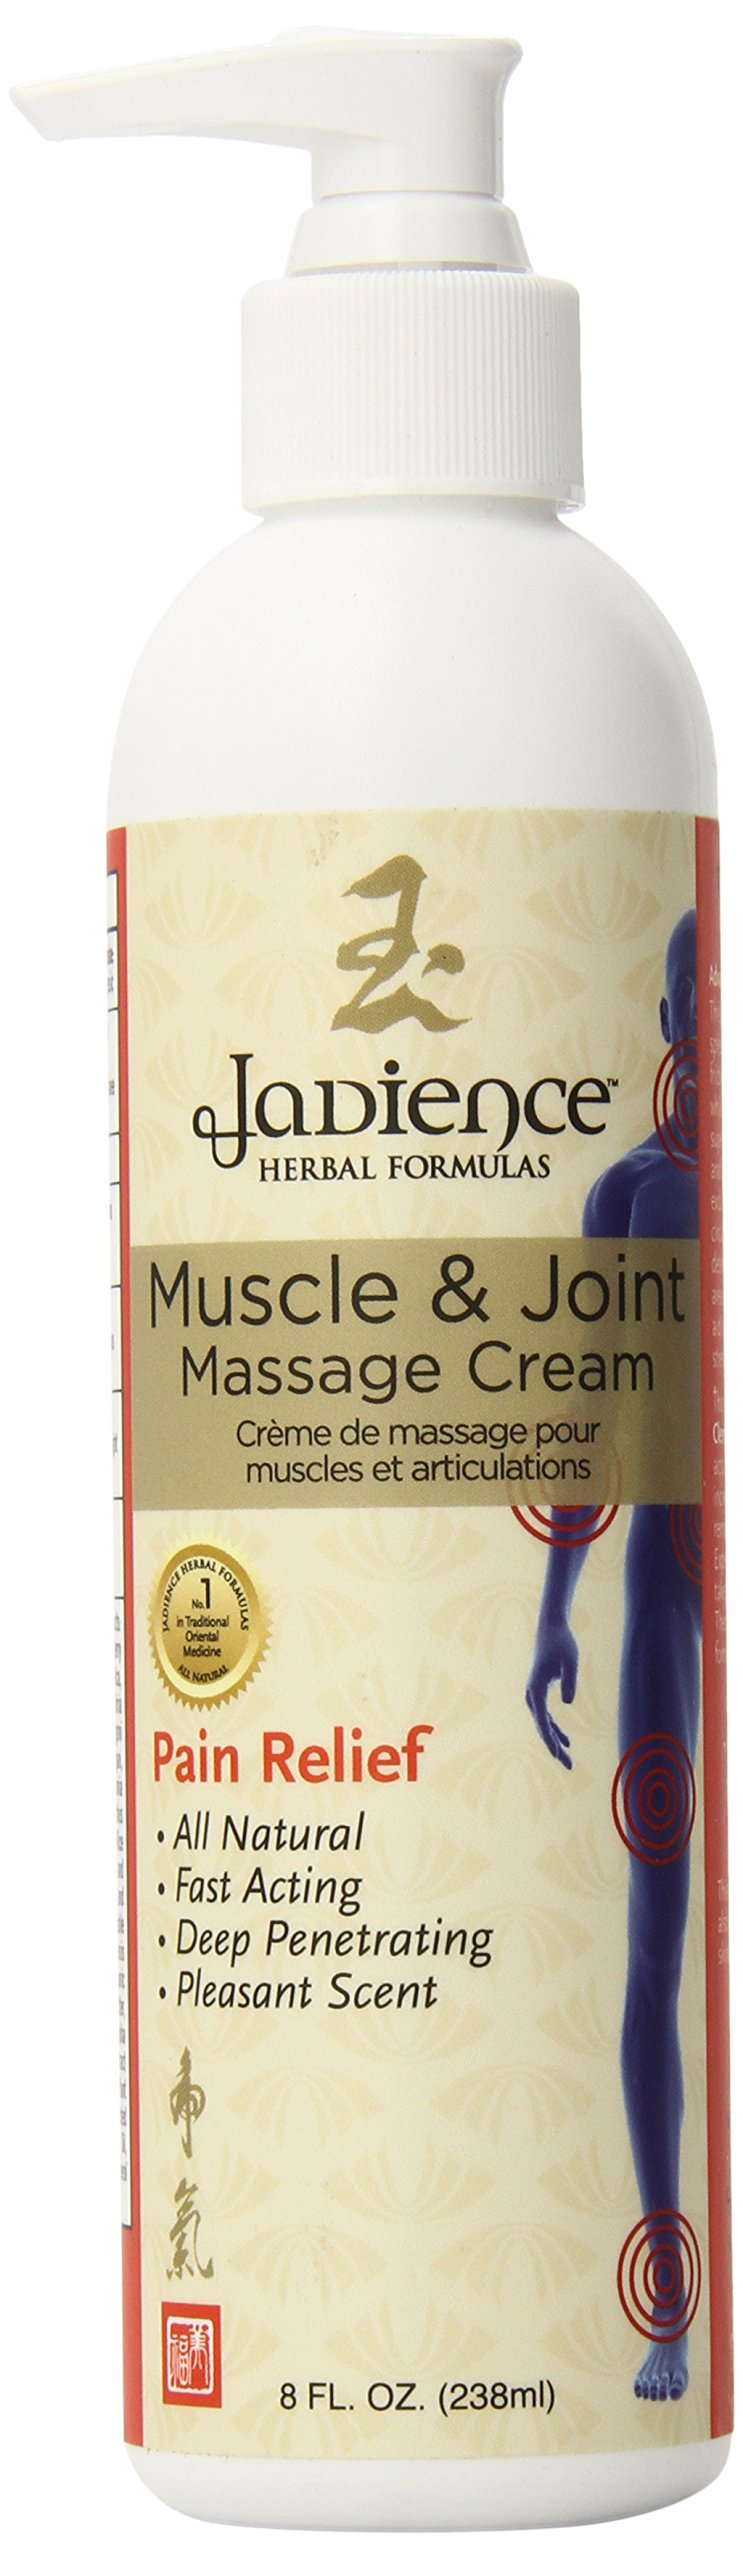 Jadience Muscle & Joint Massage Cream 8 Oz - Analgesic Pain Relief Cream - A Massage Therapy Tool for You & Your Clients by Jadience Herbal Formulas